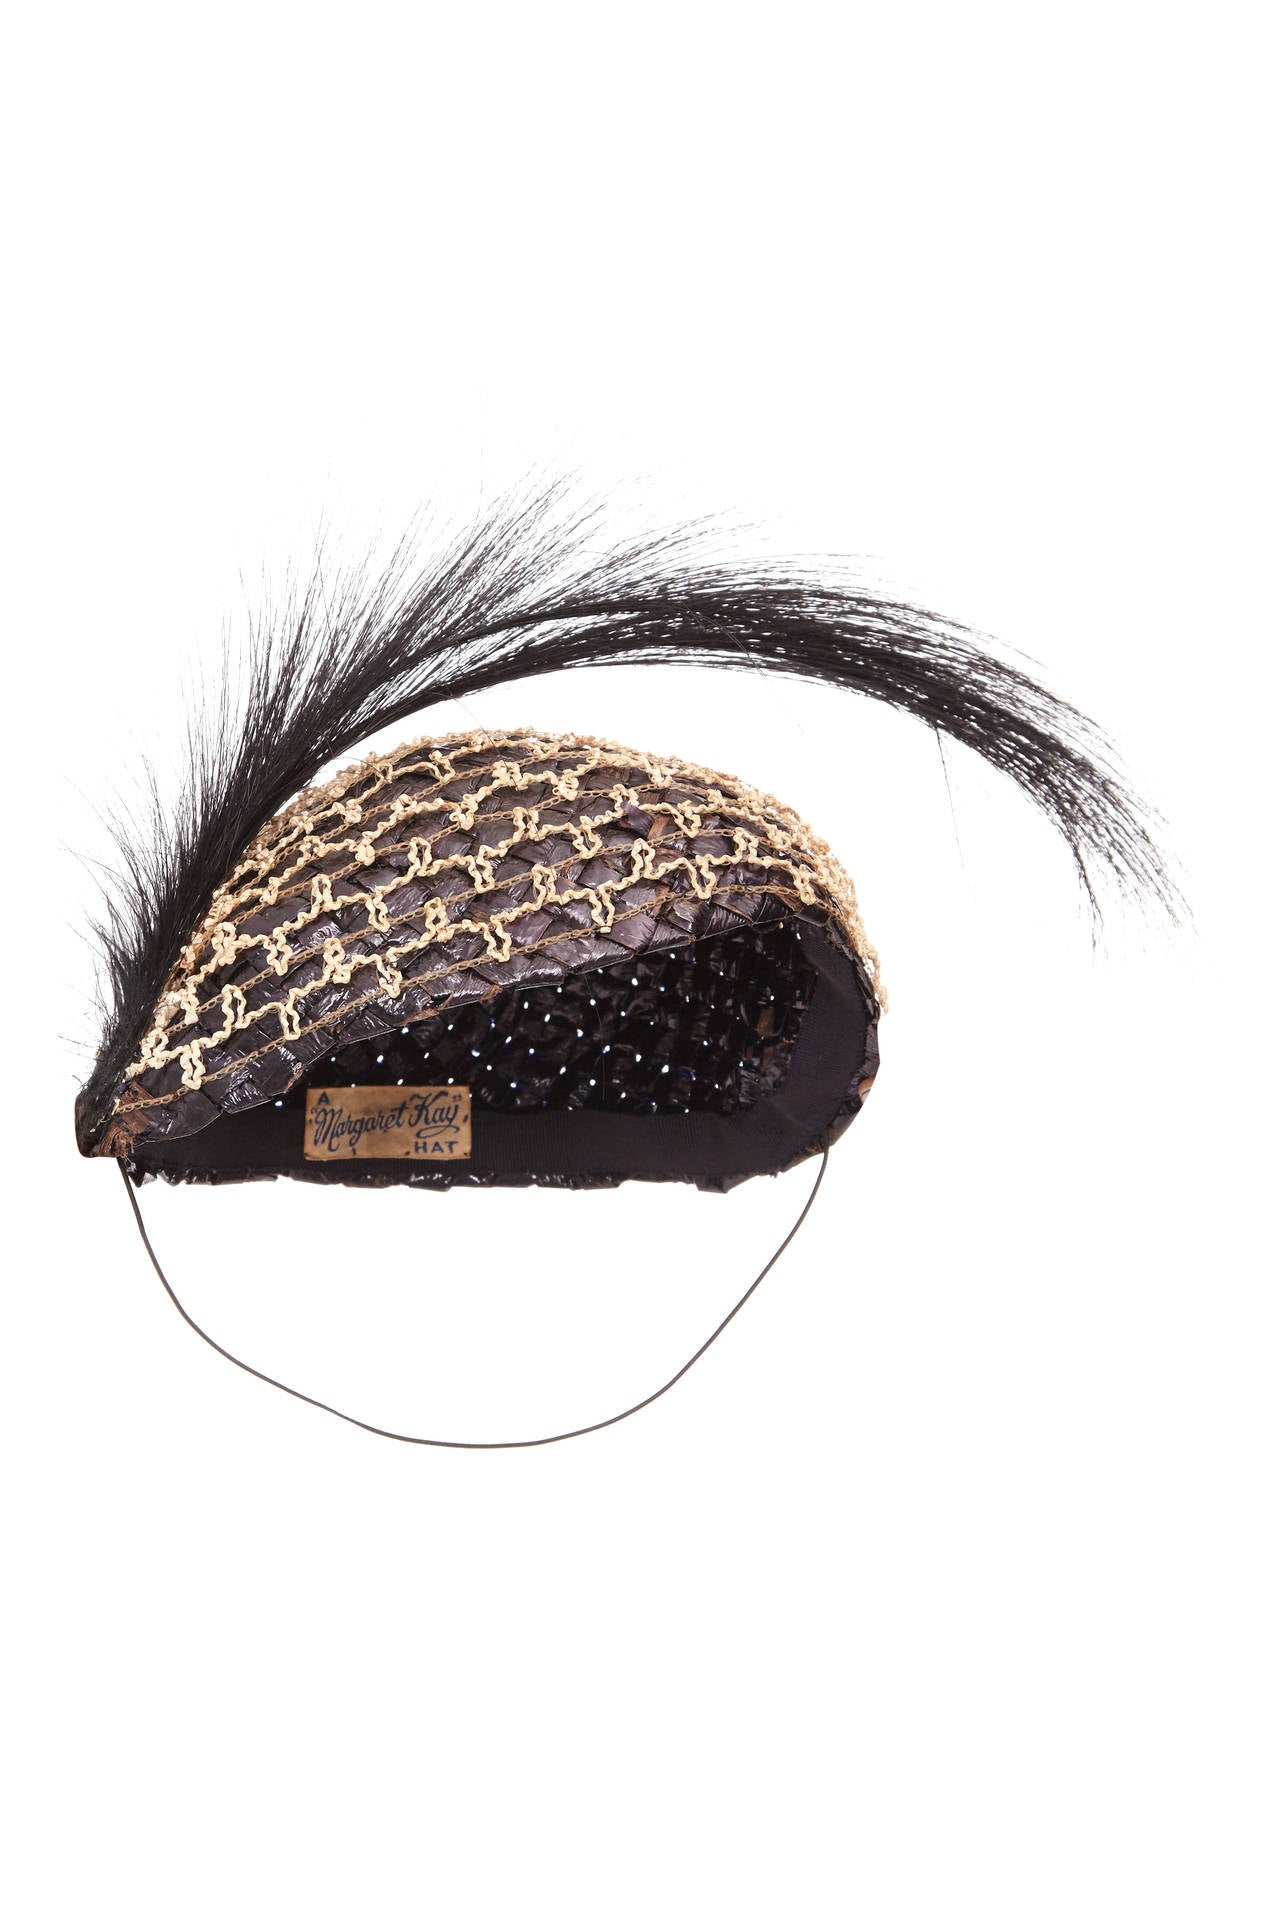 Very rare, original 1920s flapper hat made from coated black woven raffia. Additional antique two-tone cream lattice overlay to one half of the hat, topped with a black hair spray.  Original label reads